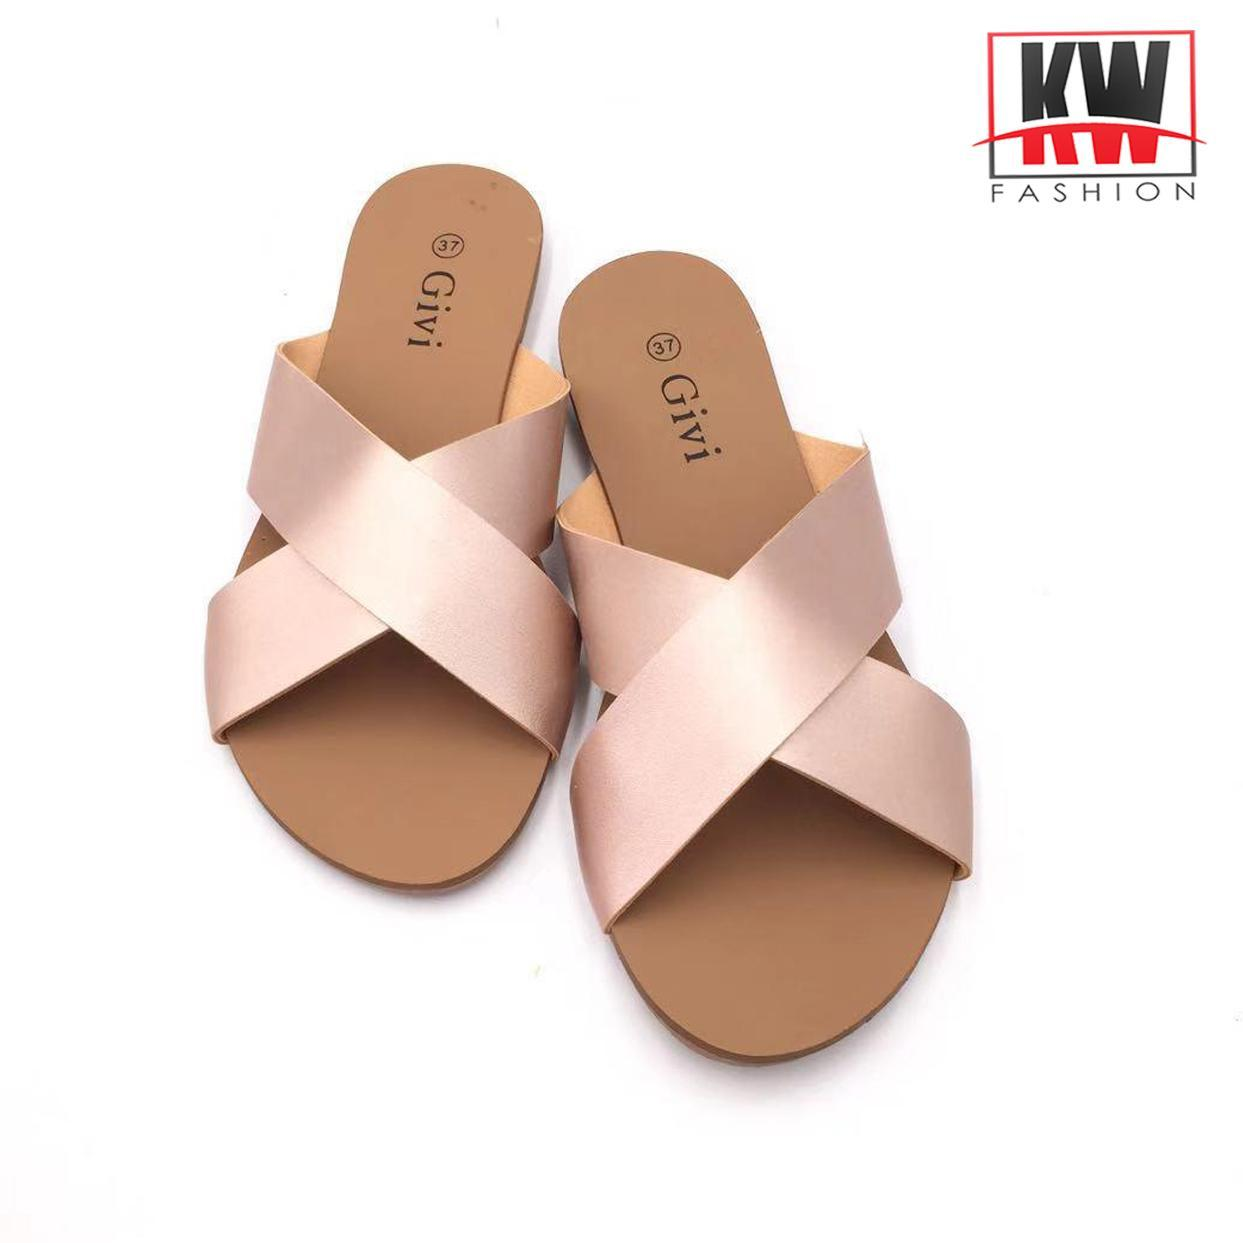 e0a9e1aa9c9 Womens Sandals for sale - Ladies Sandals online brands